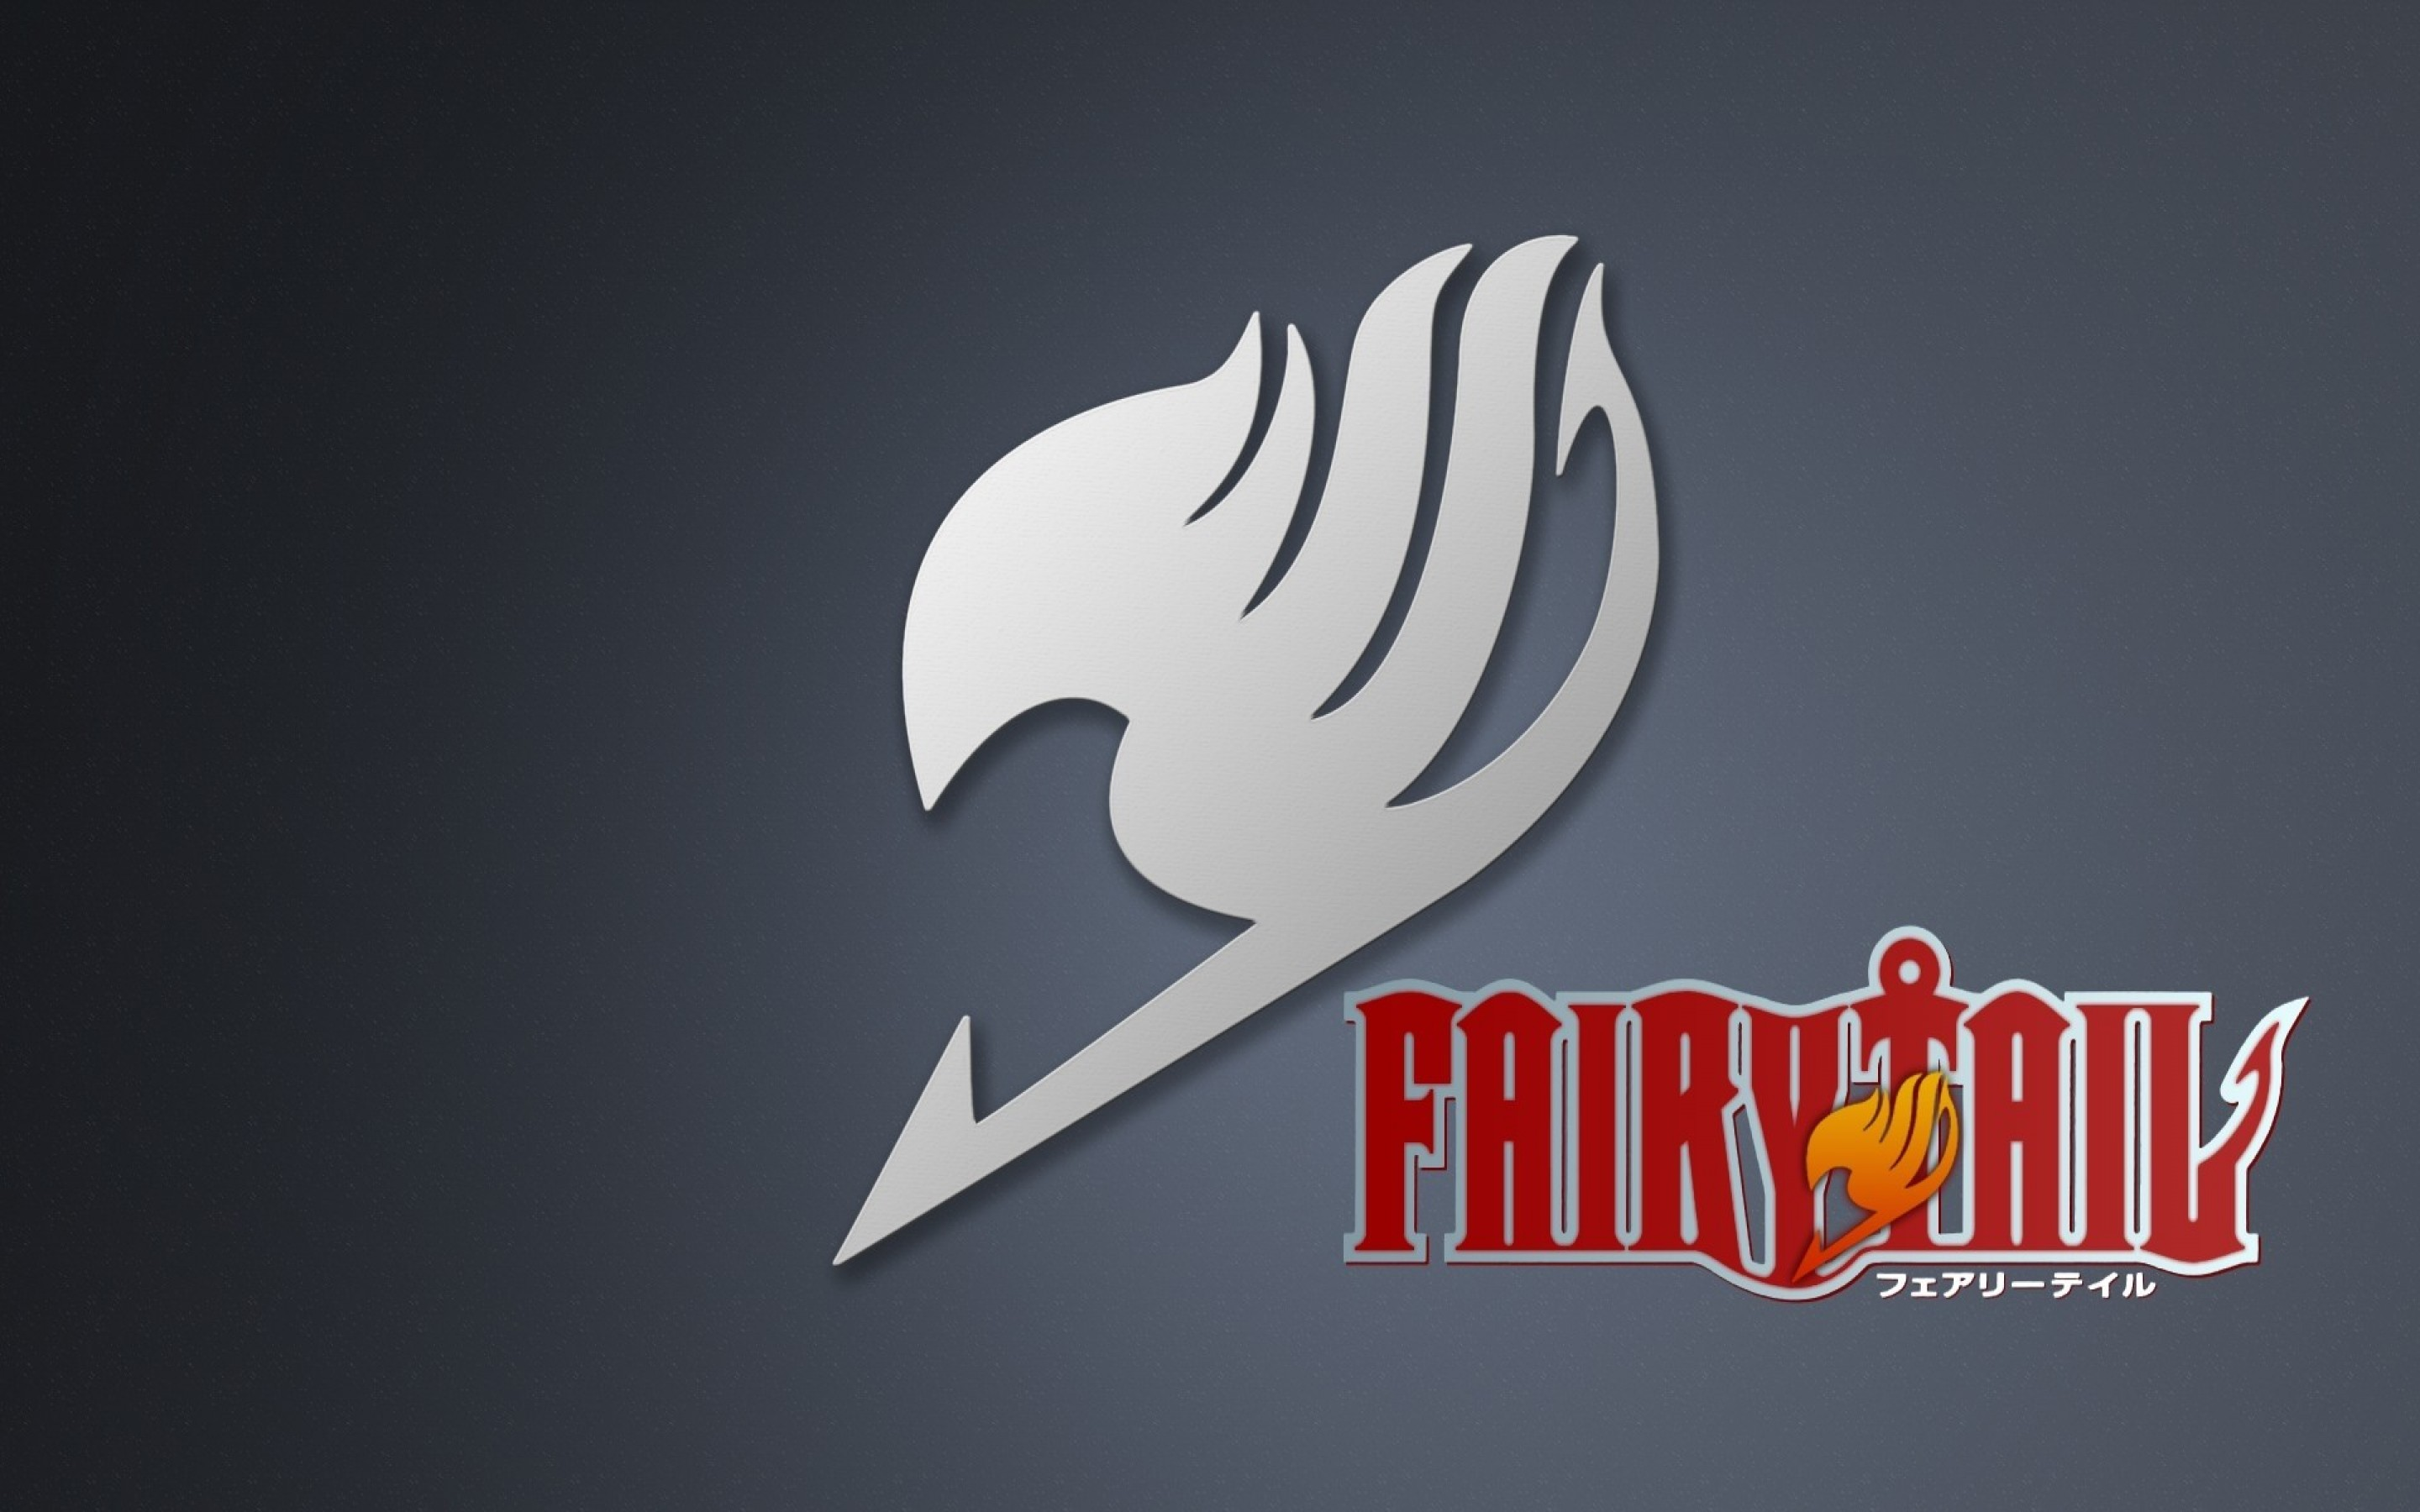 Free Download Fairy Tail Logo Hd Wallpaper In High